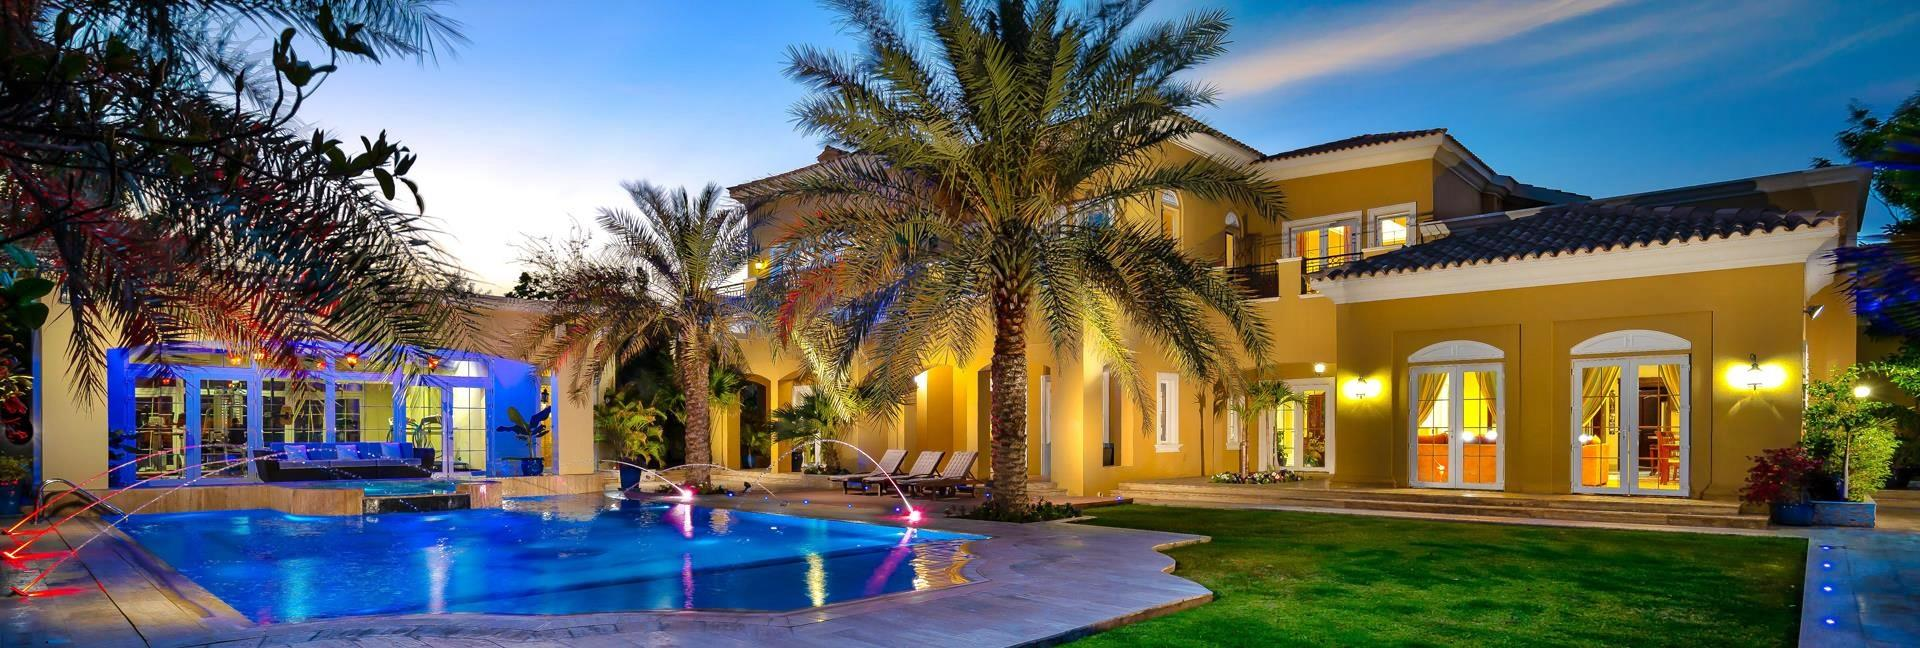 Villas for Rent in Arabian Ranches